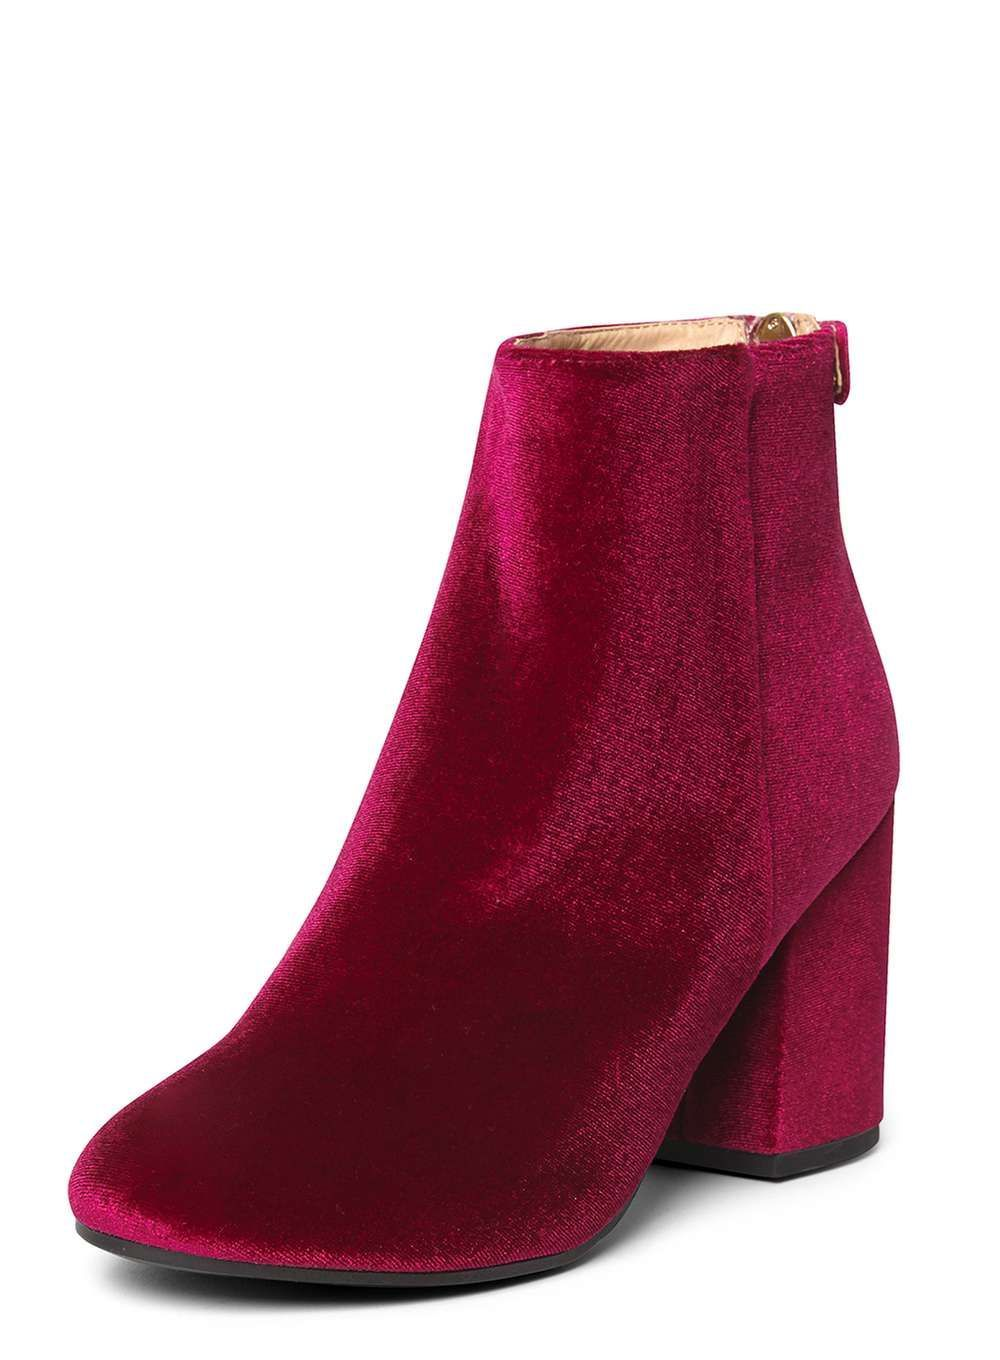 799fa81eaf5 Cerise 'Mariah' Velvet Boots | Girly | Boots, Velvet shoes, Block ...